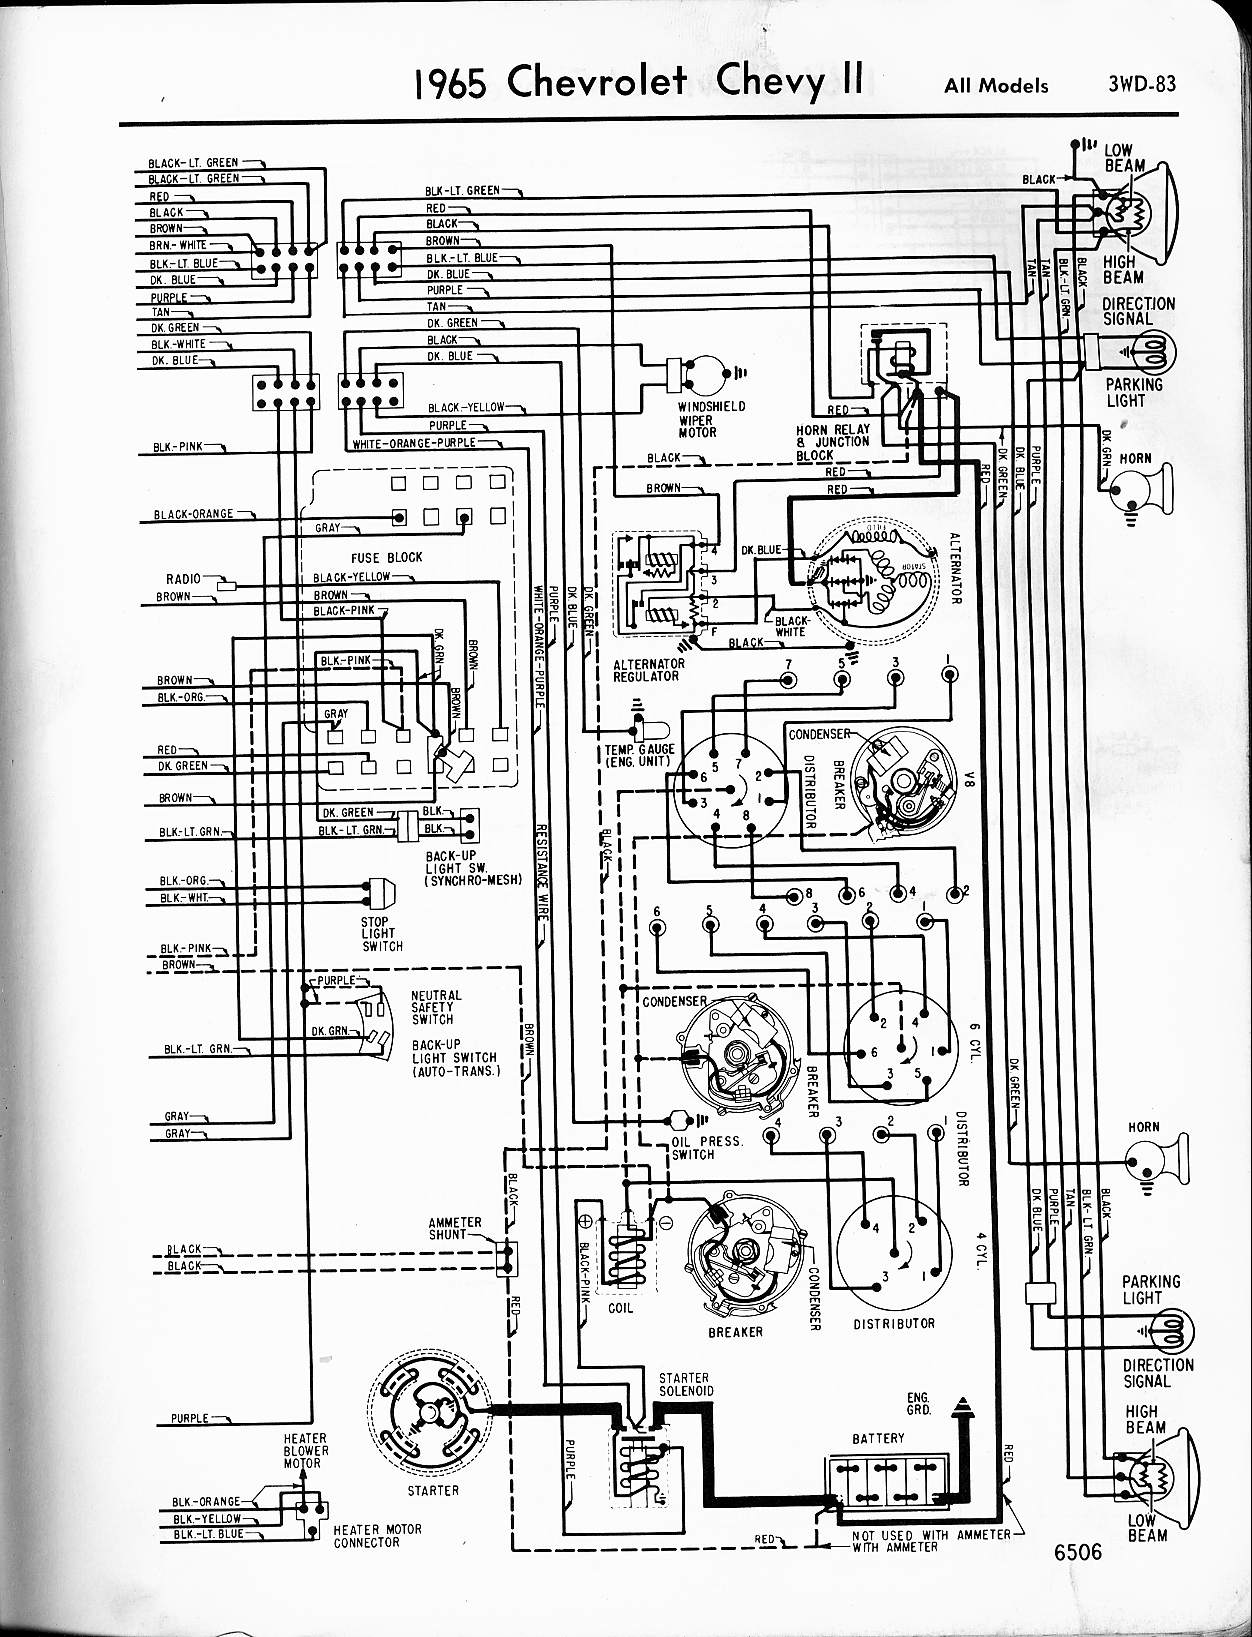 MWireChev65_3WD 083 chevy diagrams 1965 thunderbird alternator wiring diagram at soozxer.org